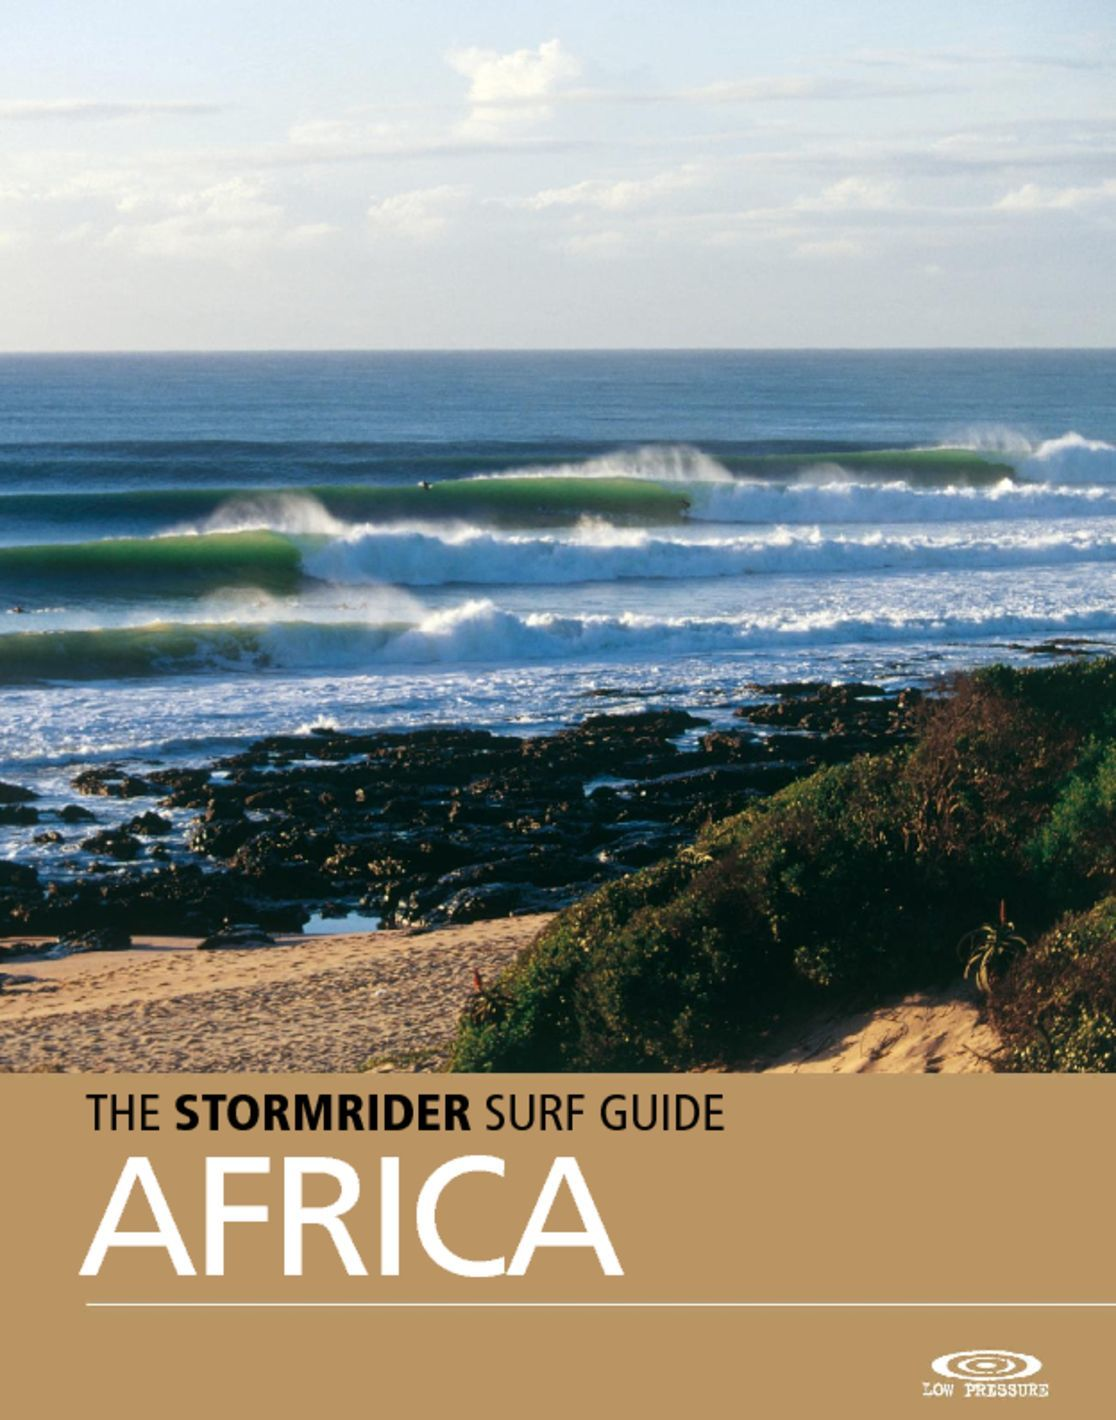 The Stormrider Surf Guide Africa Digital